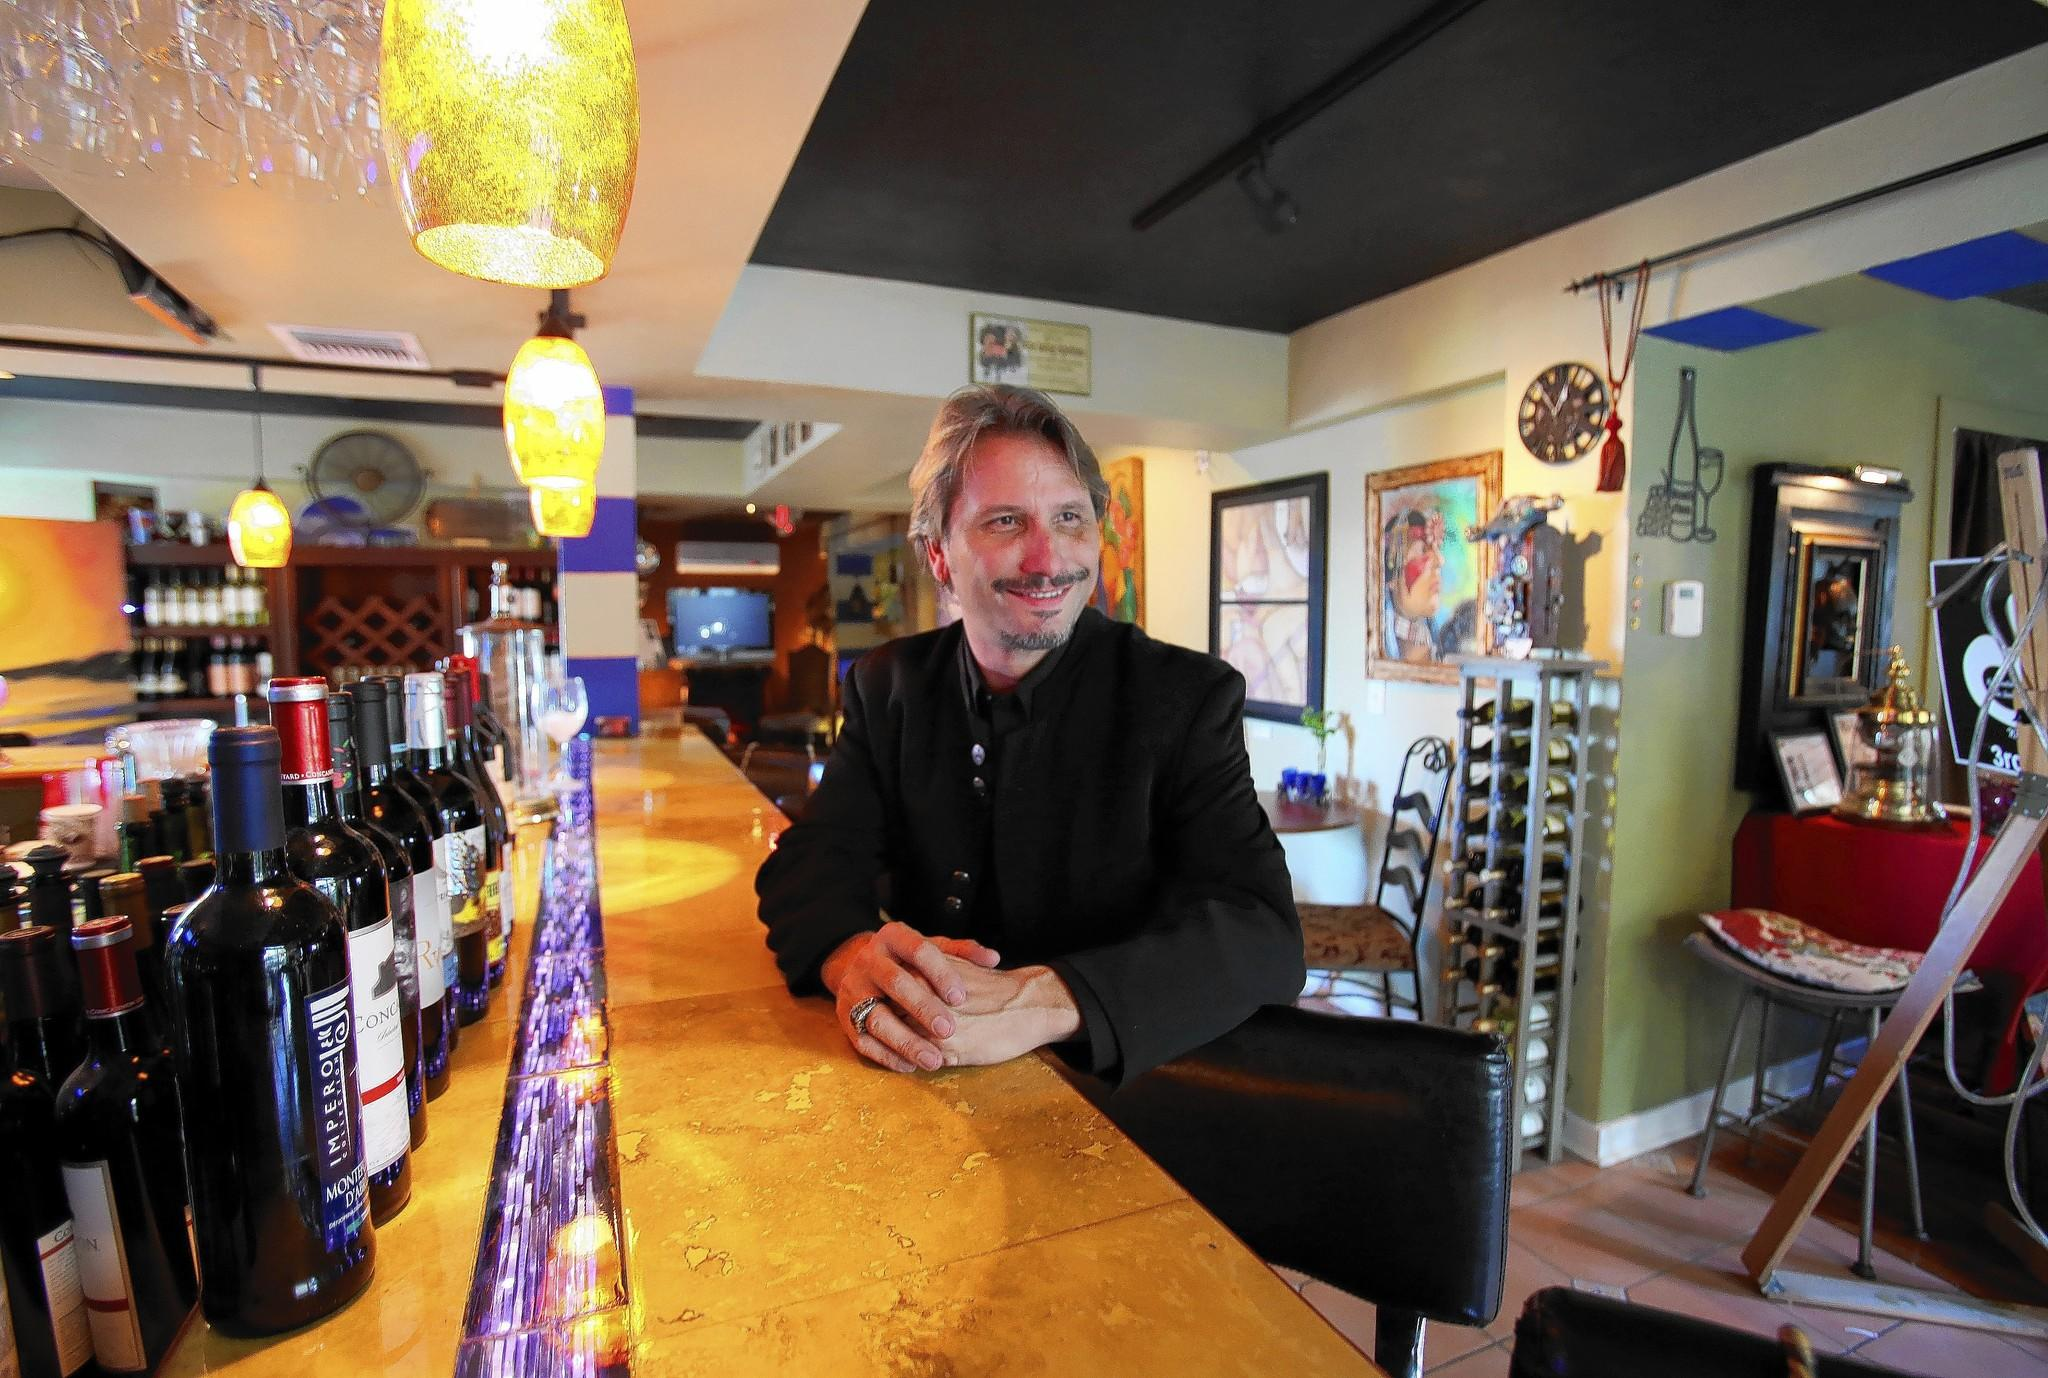 Norman Rinne sits at the bar in Norm's Palette, a combination art gallery and bar in the heart of Mount Dora, on Friday, November 6, 2013.